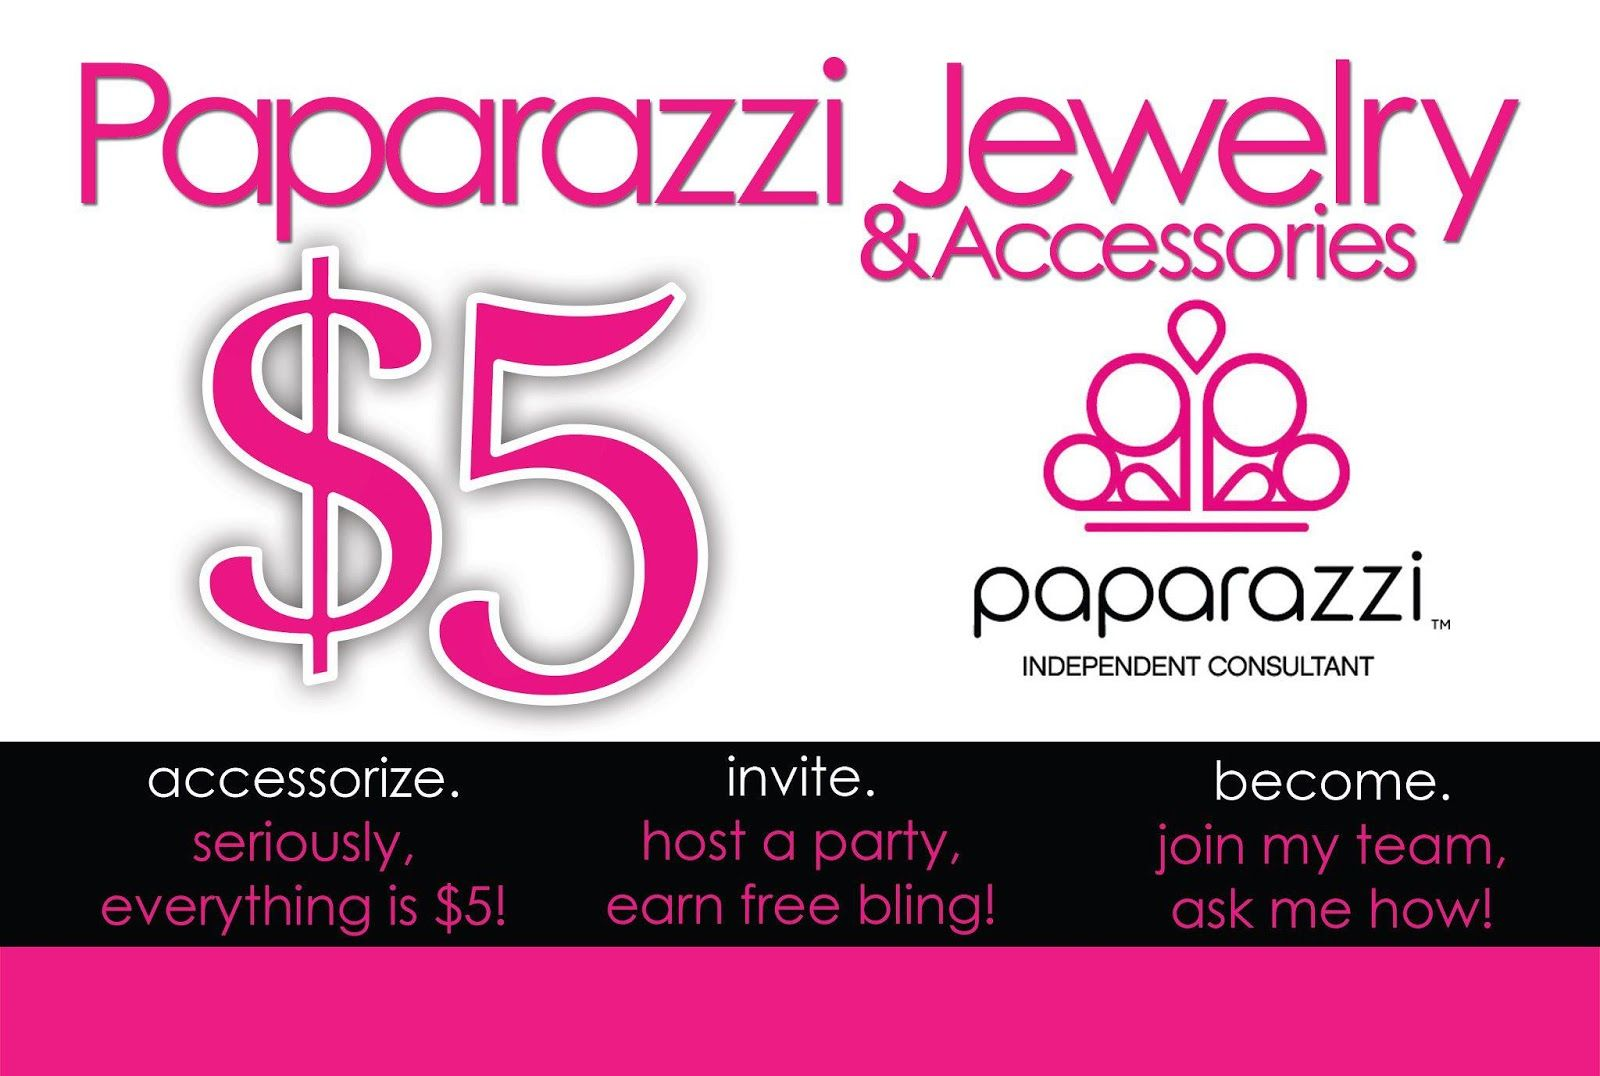 Paparazzi jewelry and accessories accessories invite for Paparazzi jewelry find a consultant